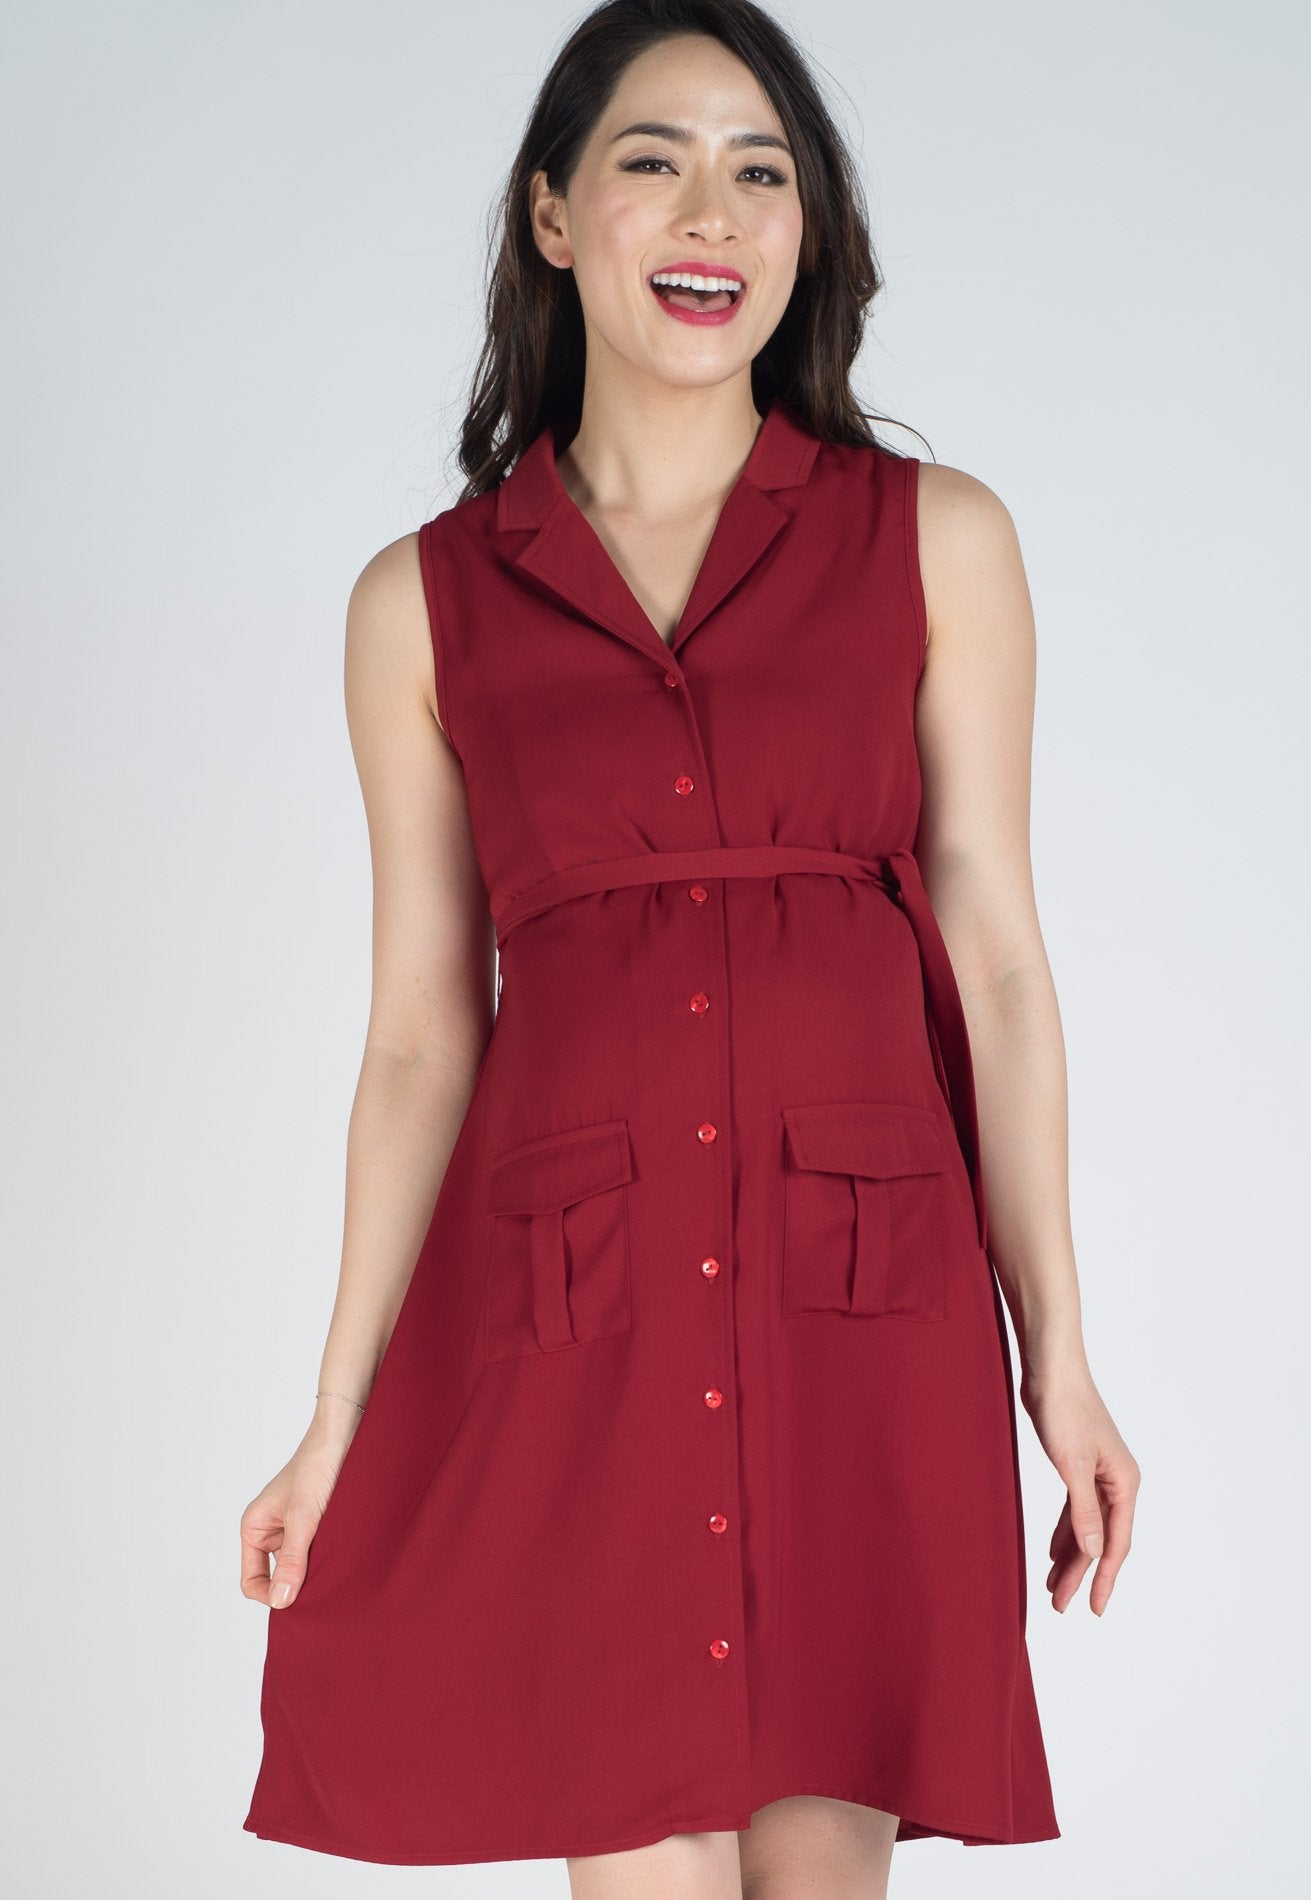 SALE Dark Red Sleeveless Button Down Nursing Dress  by Jump Eat Cry - Maternity and nursing wear